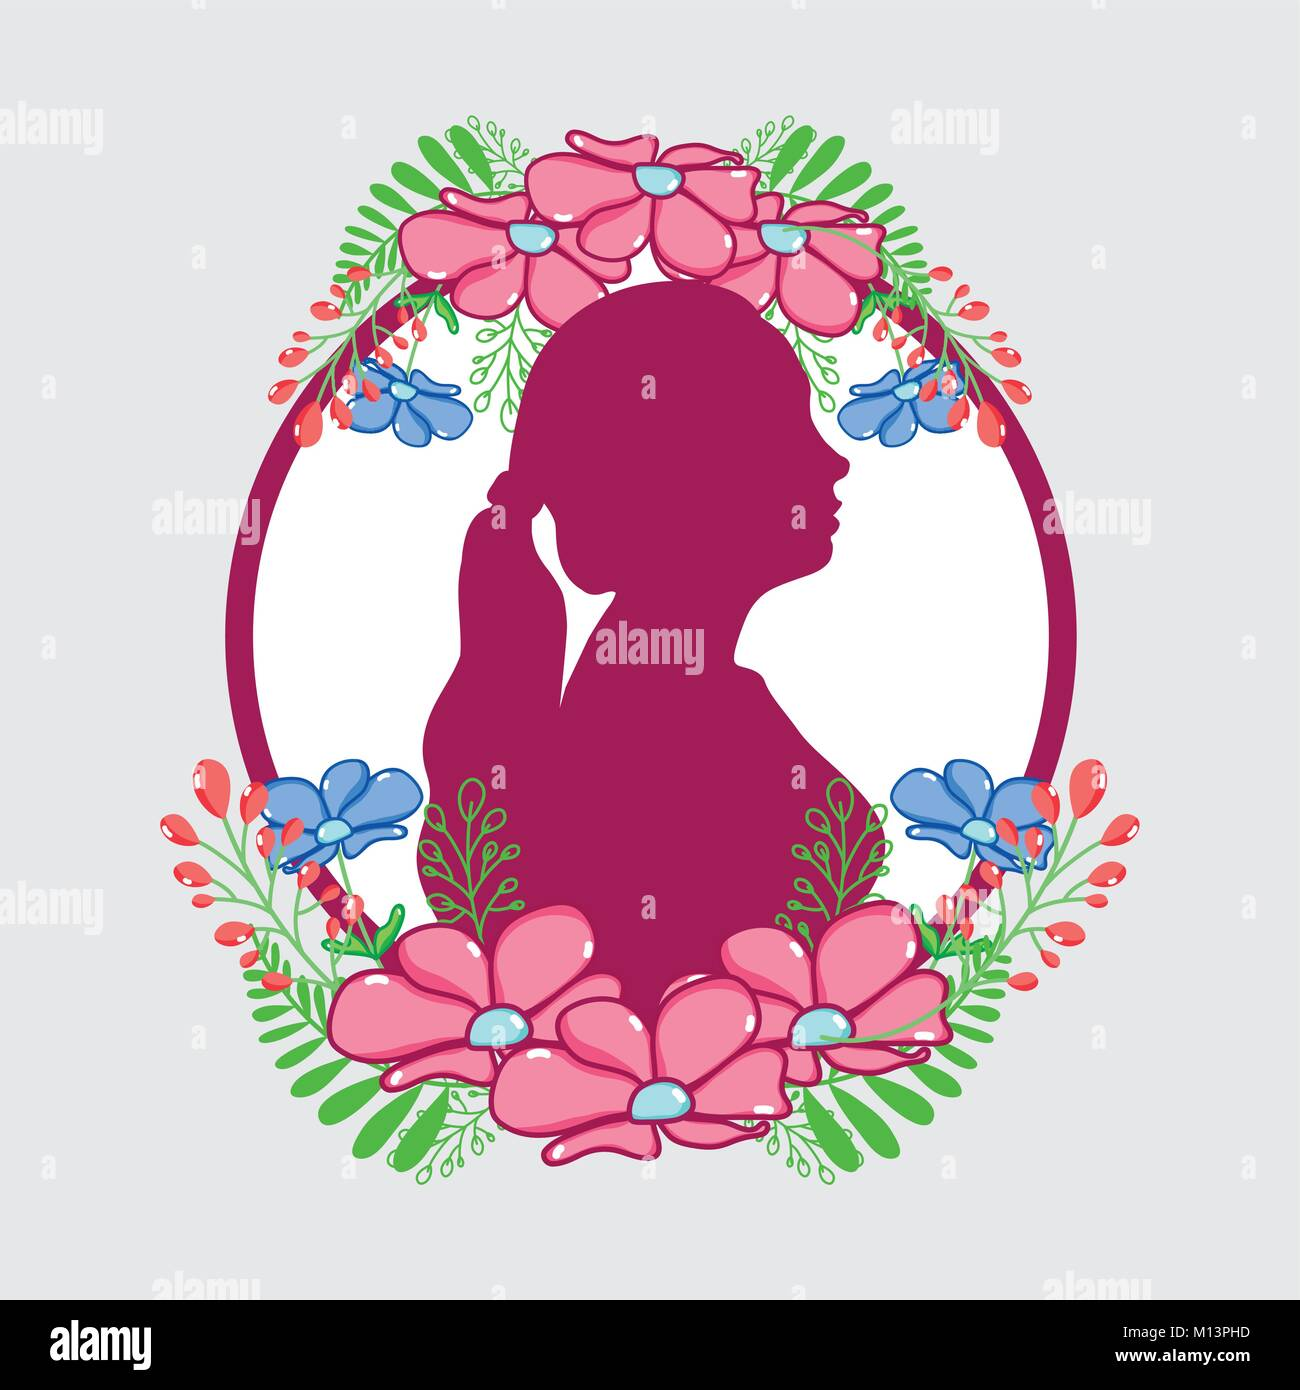 fucsia woman silhouette with flowers and leaves design Stock Vector